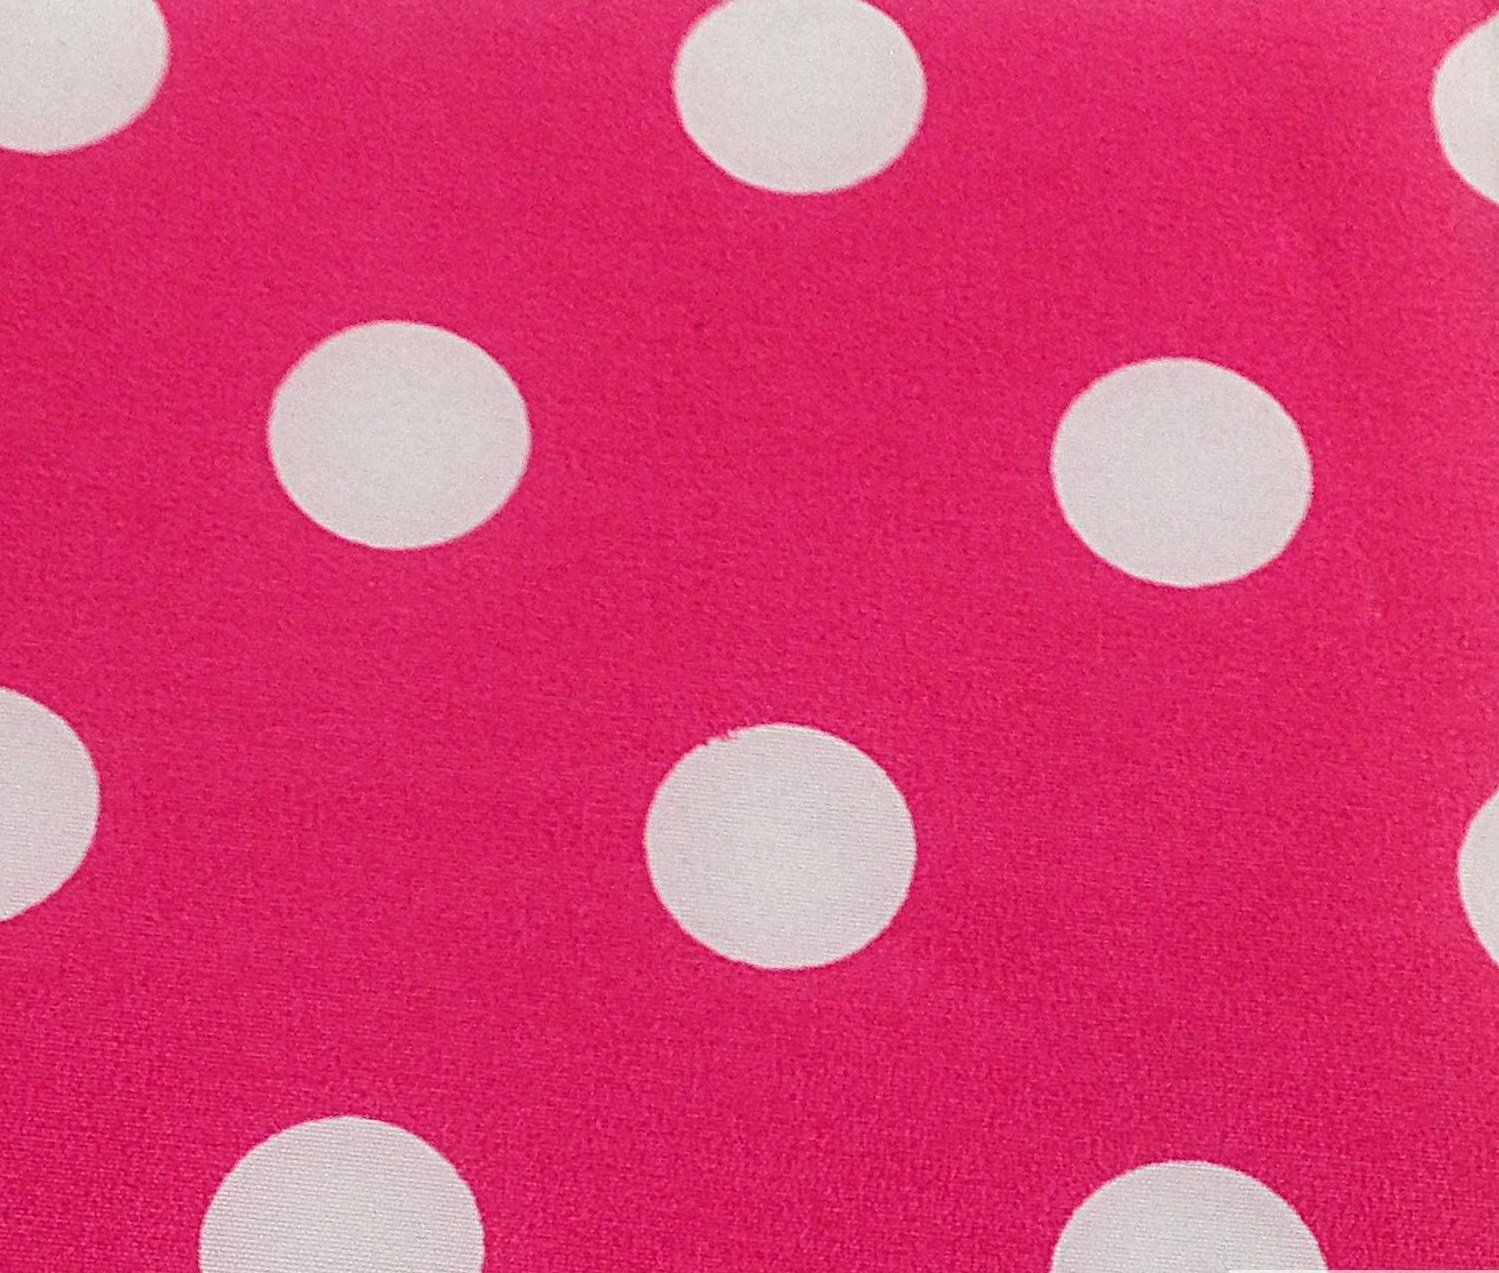 3/4th Inch Polka Dot Poly Cotton White Dot on Hot Pink 60 Inch Fabric by The Yard (F.E.)